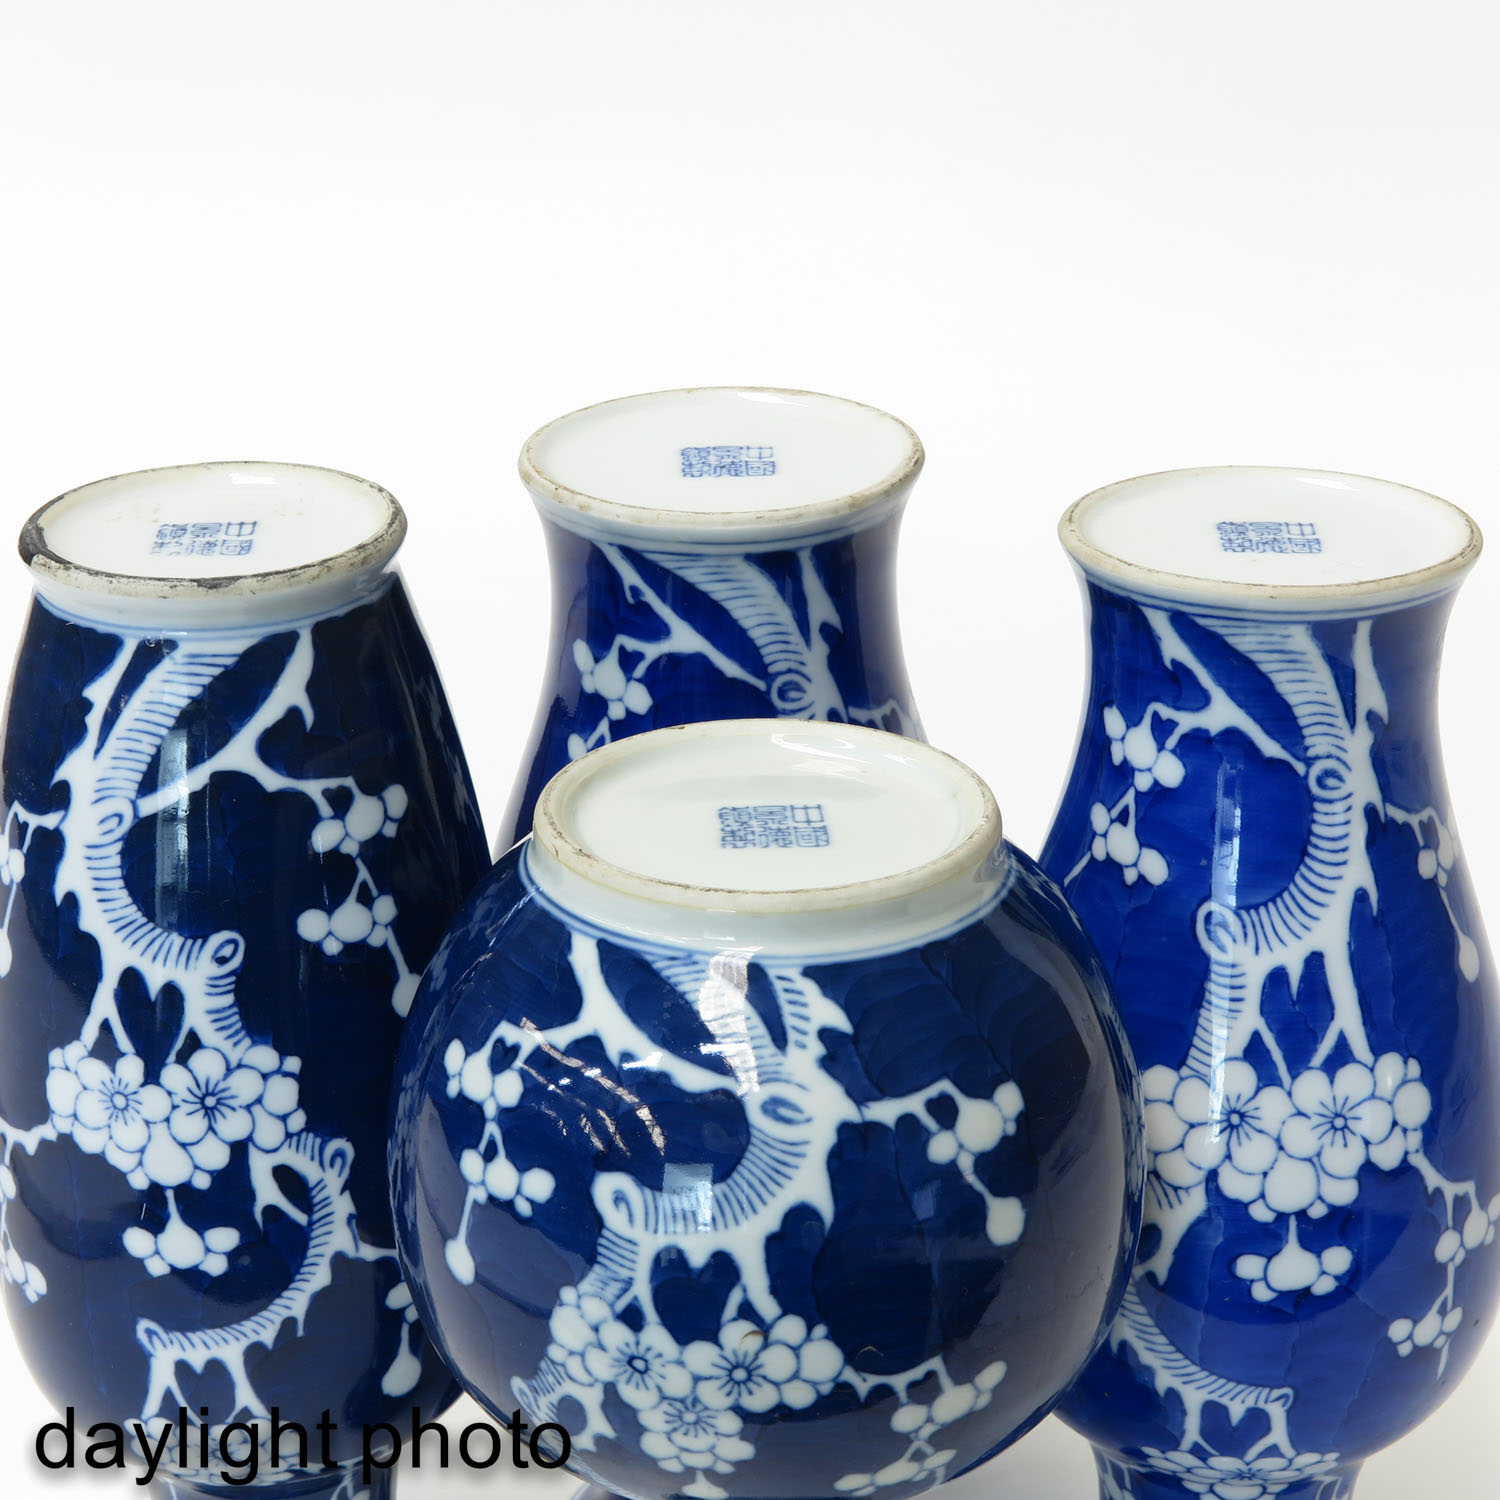 A Collection of 4 Vases - Image 8 of 9